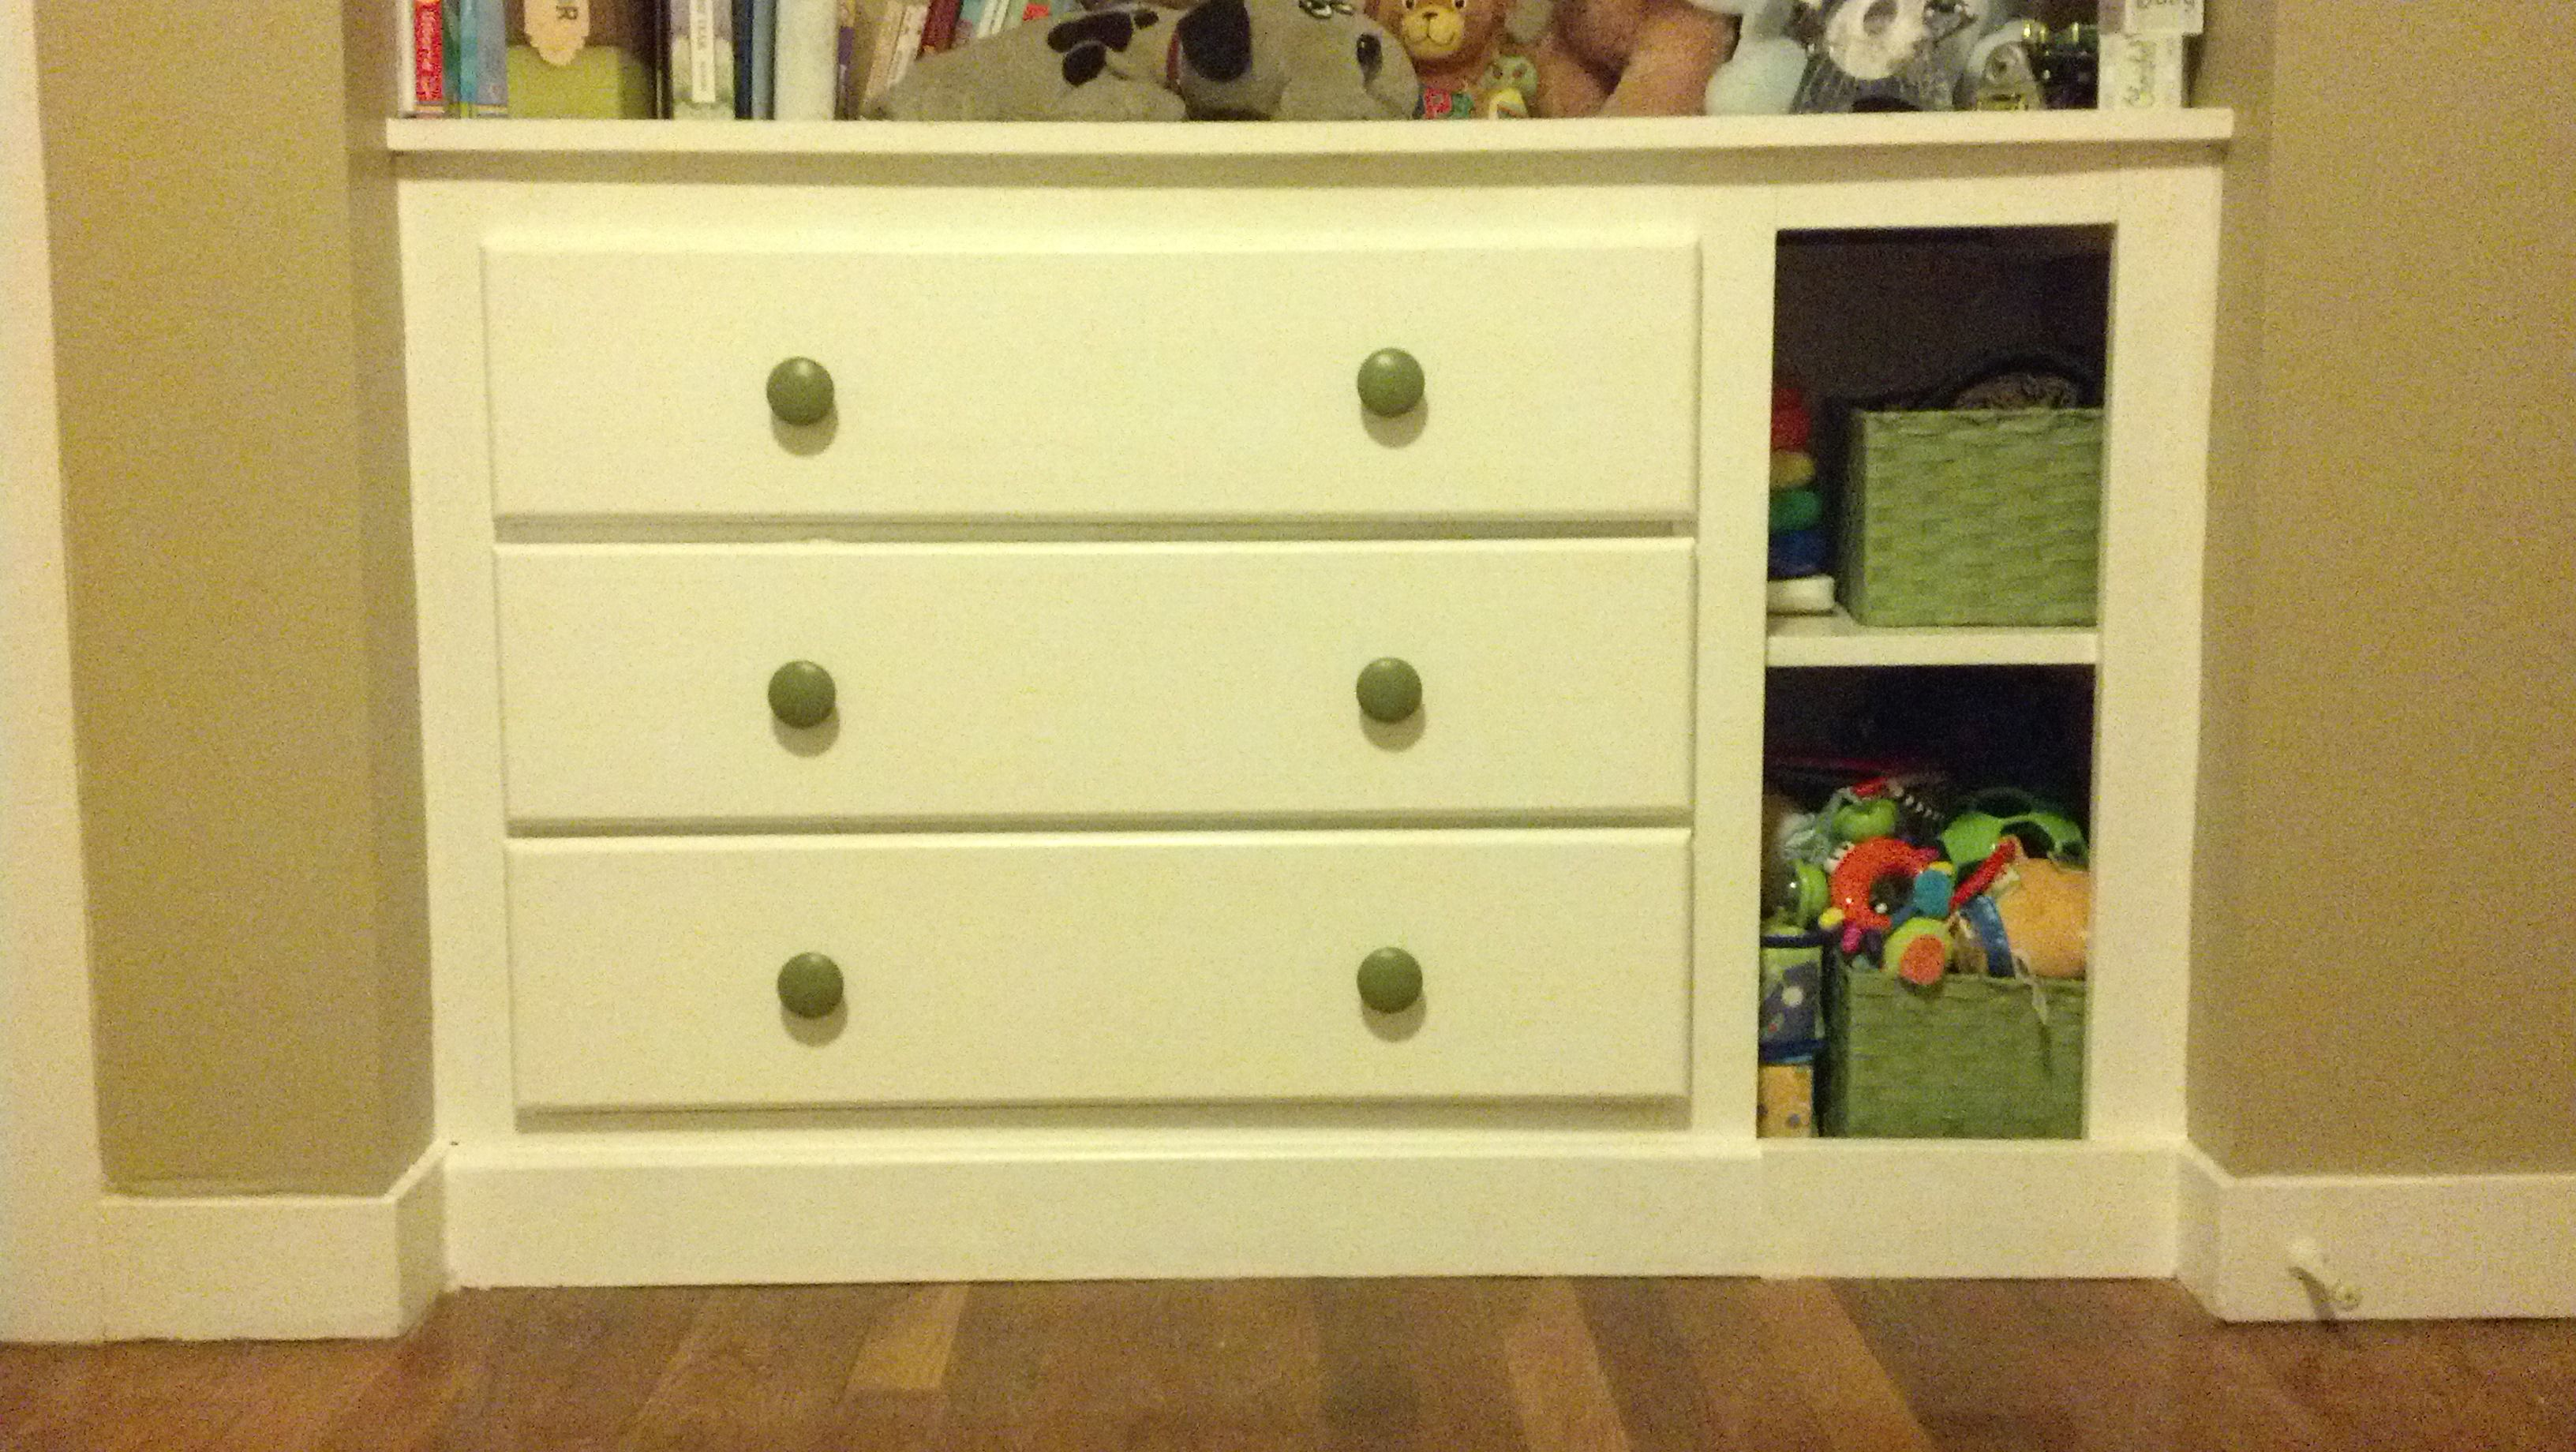 Diy built in dresser with side shelves and knobs painted to match the pin stripe on the wall